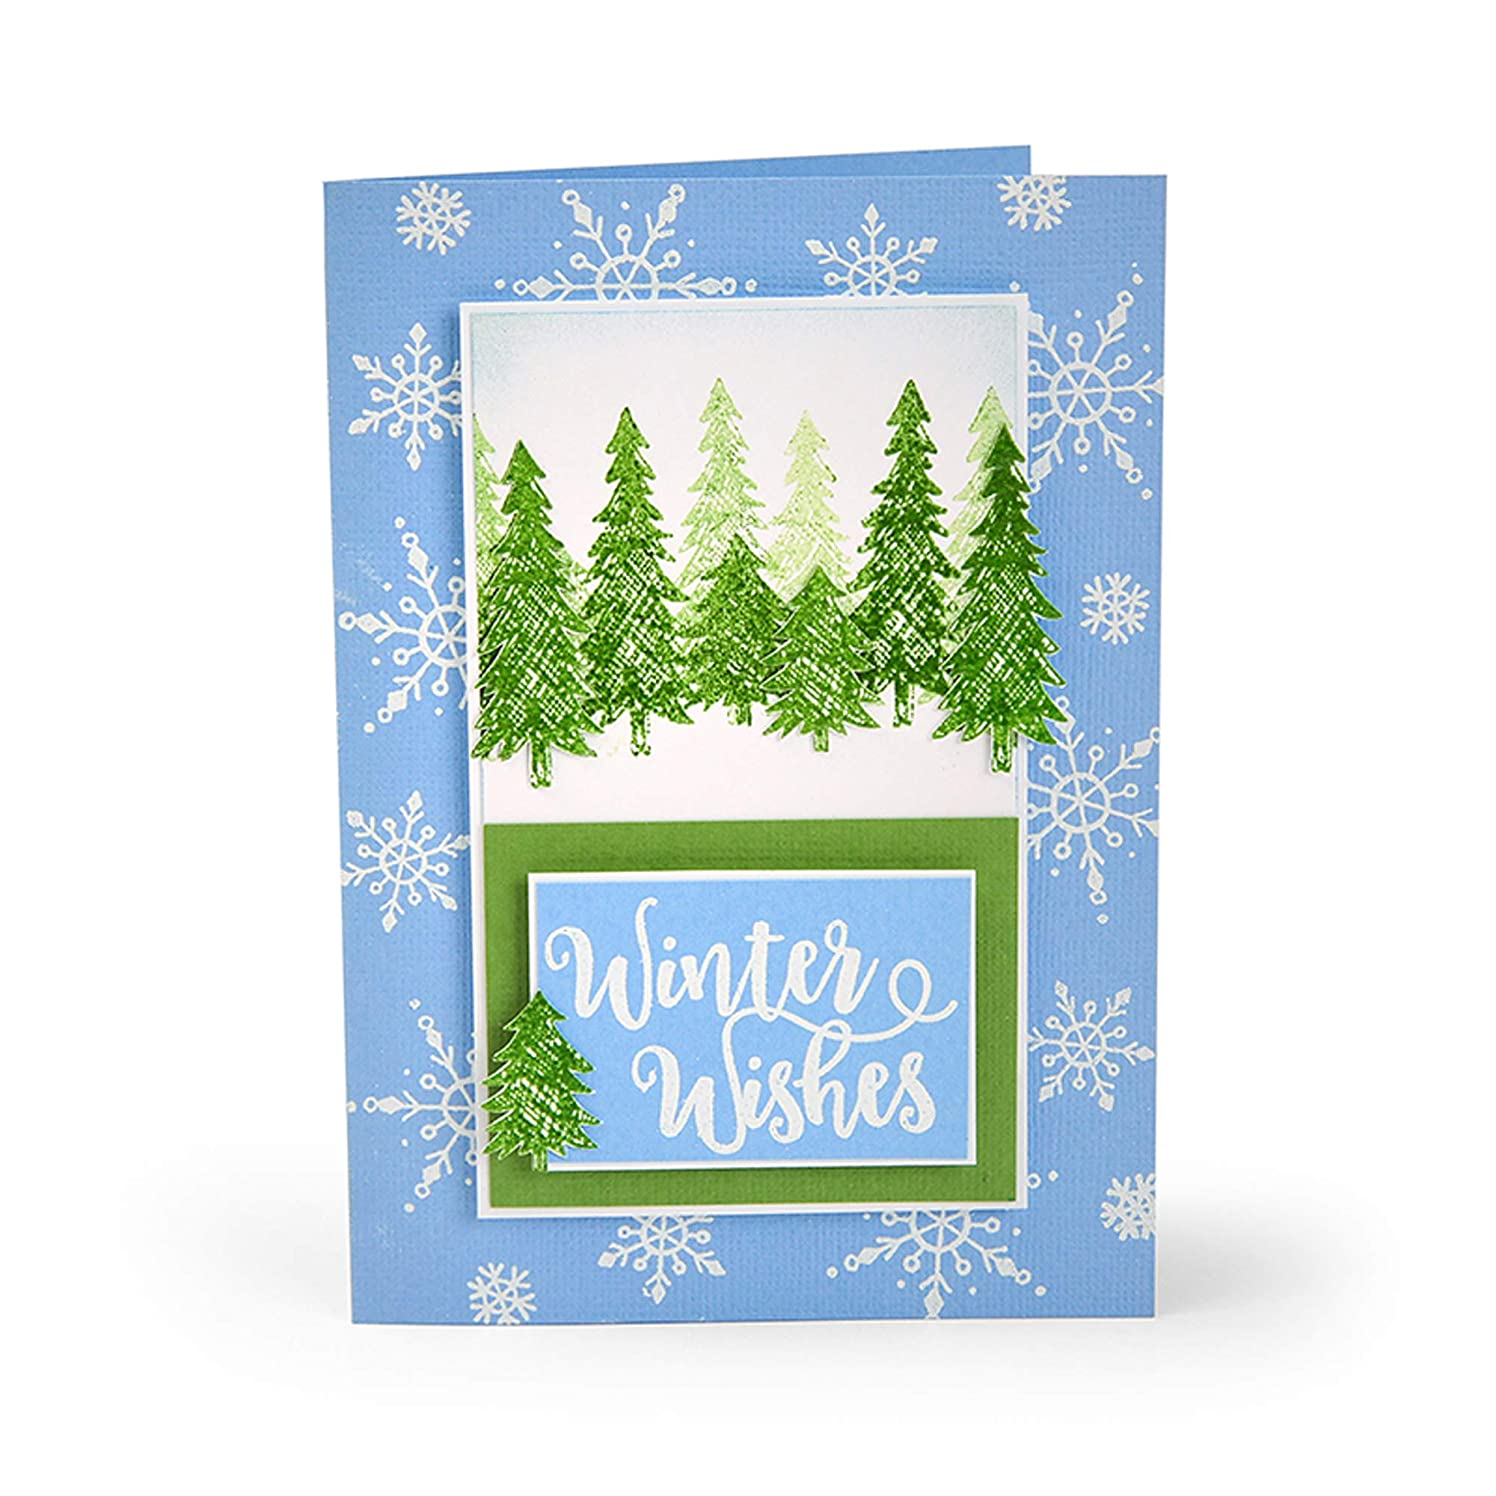 Sizzix 663614 Winter Phrases by Katelyn Lizardi Stamps, us:one Size, Multicolor